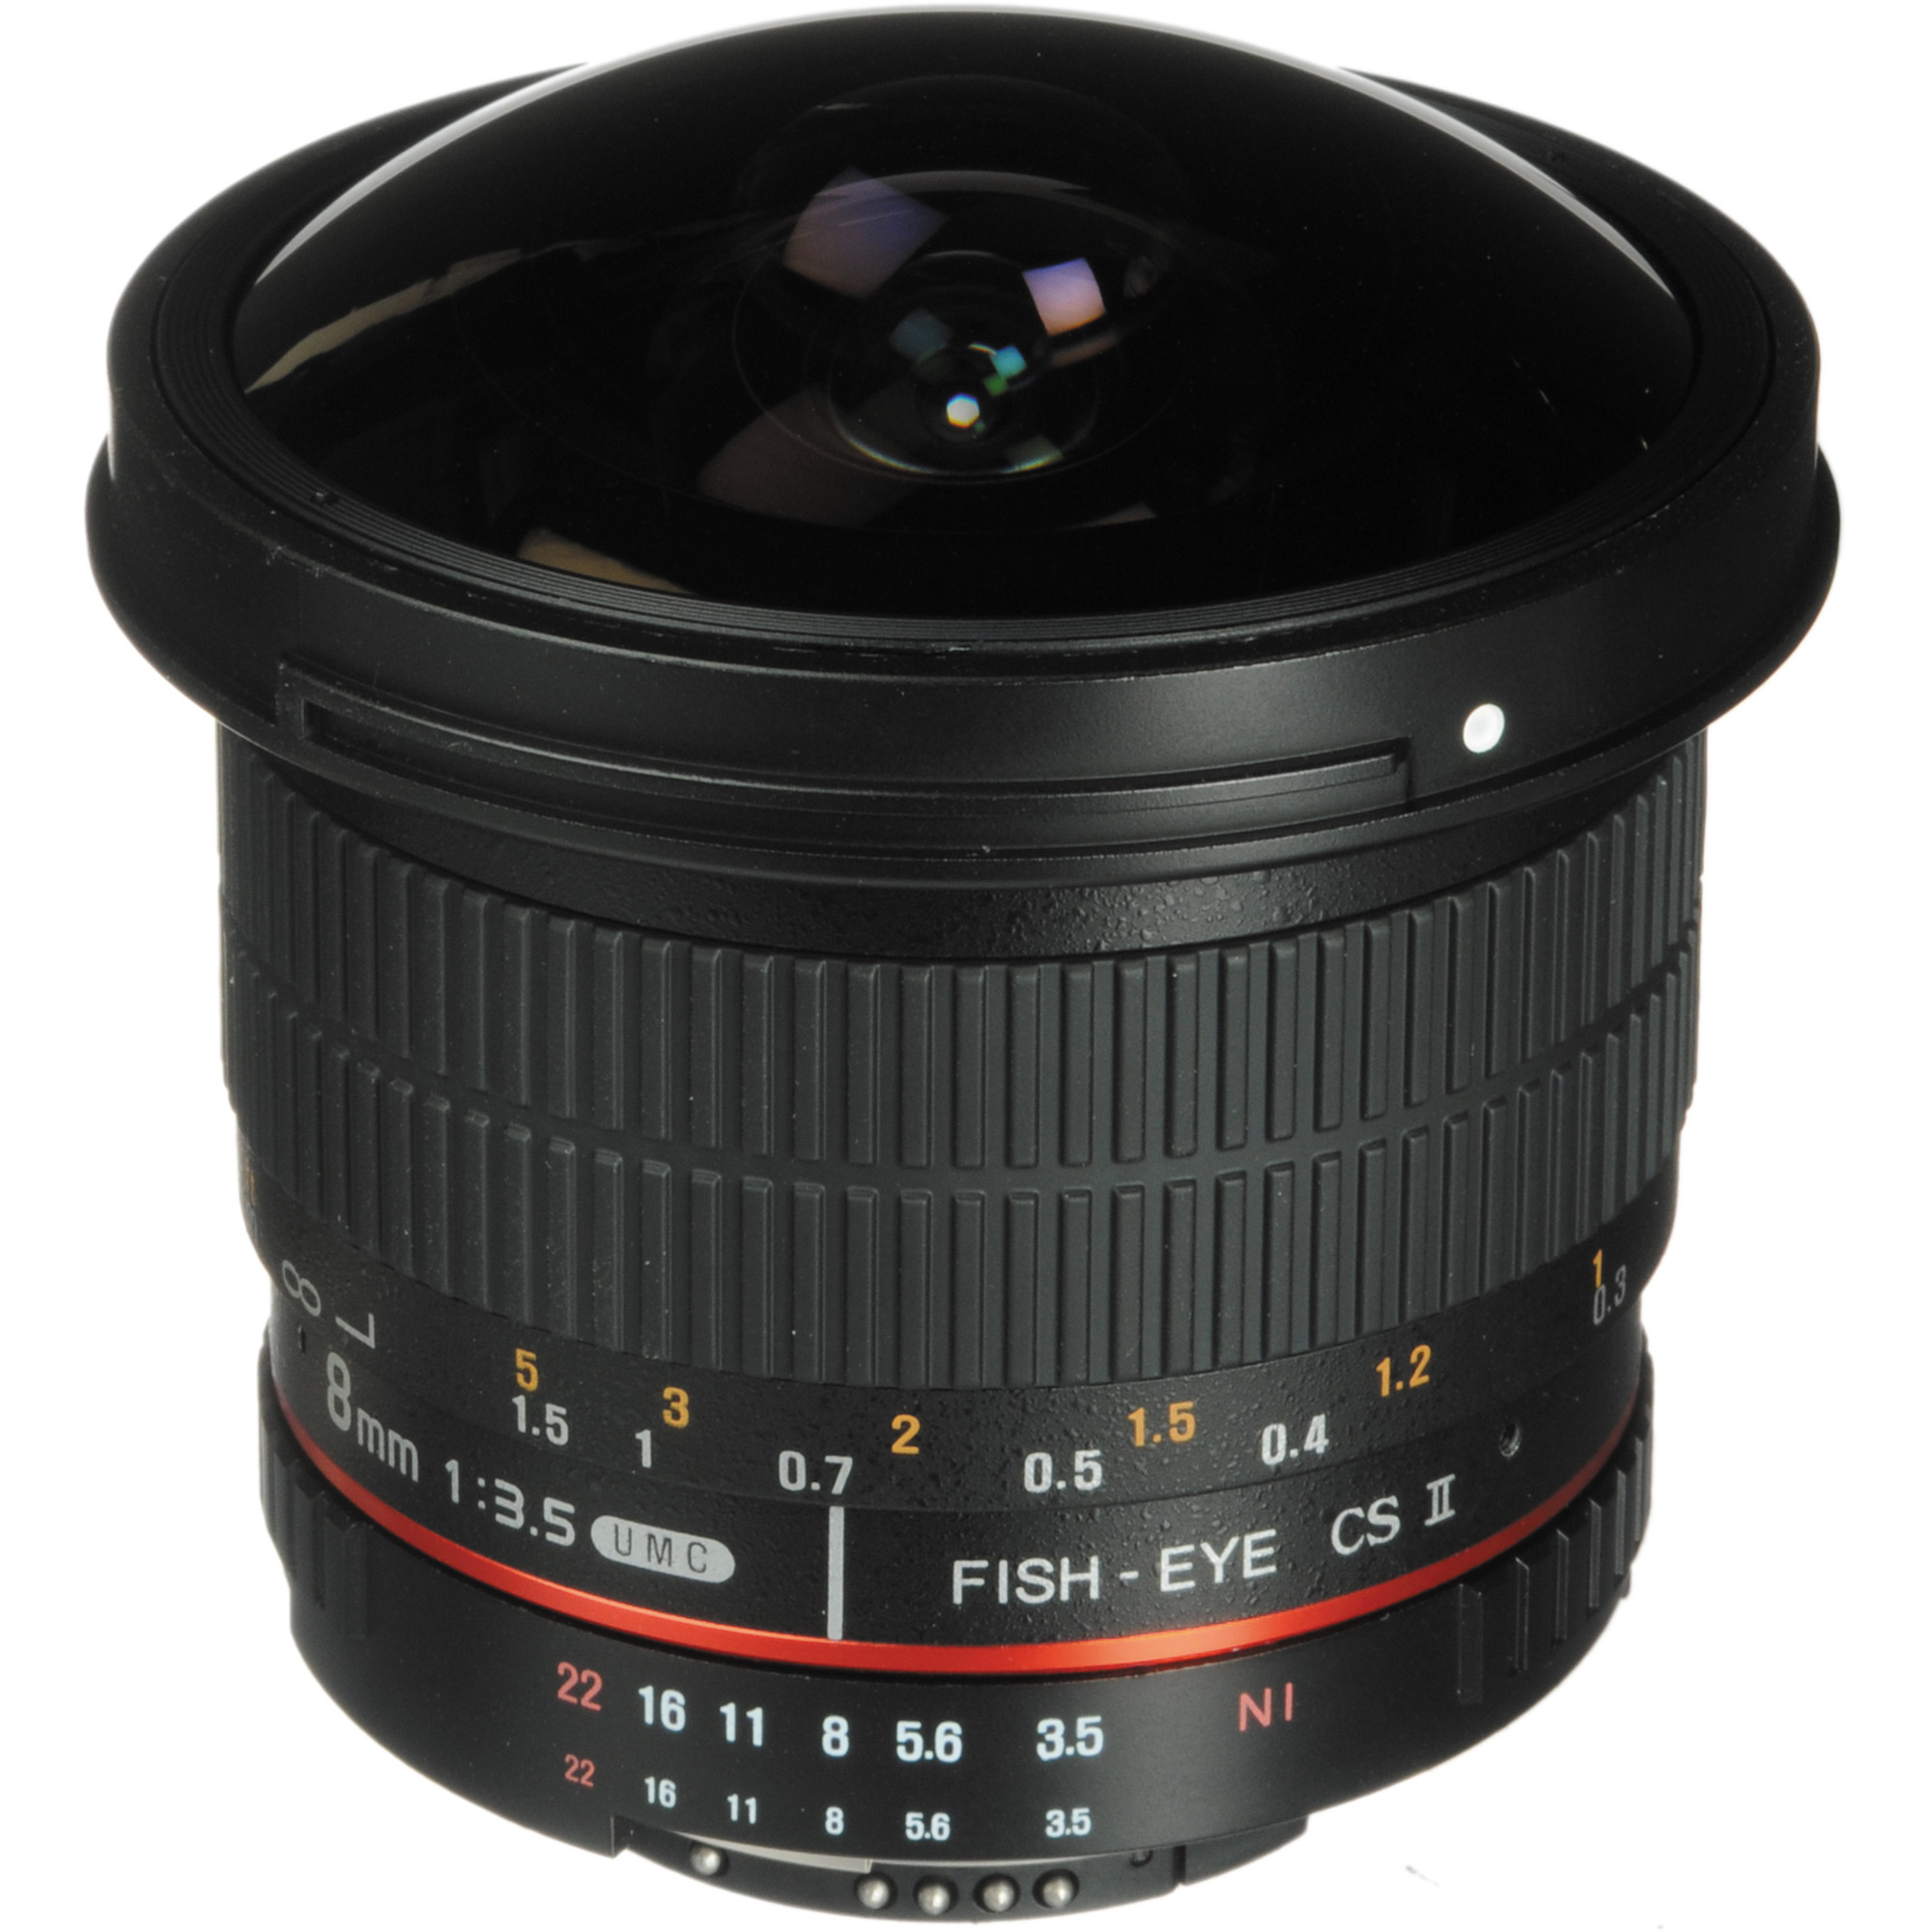 Rokinon 8mm f/3.5 HD Fisheye Lens with Removable Hood for Nikon